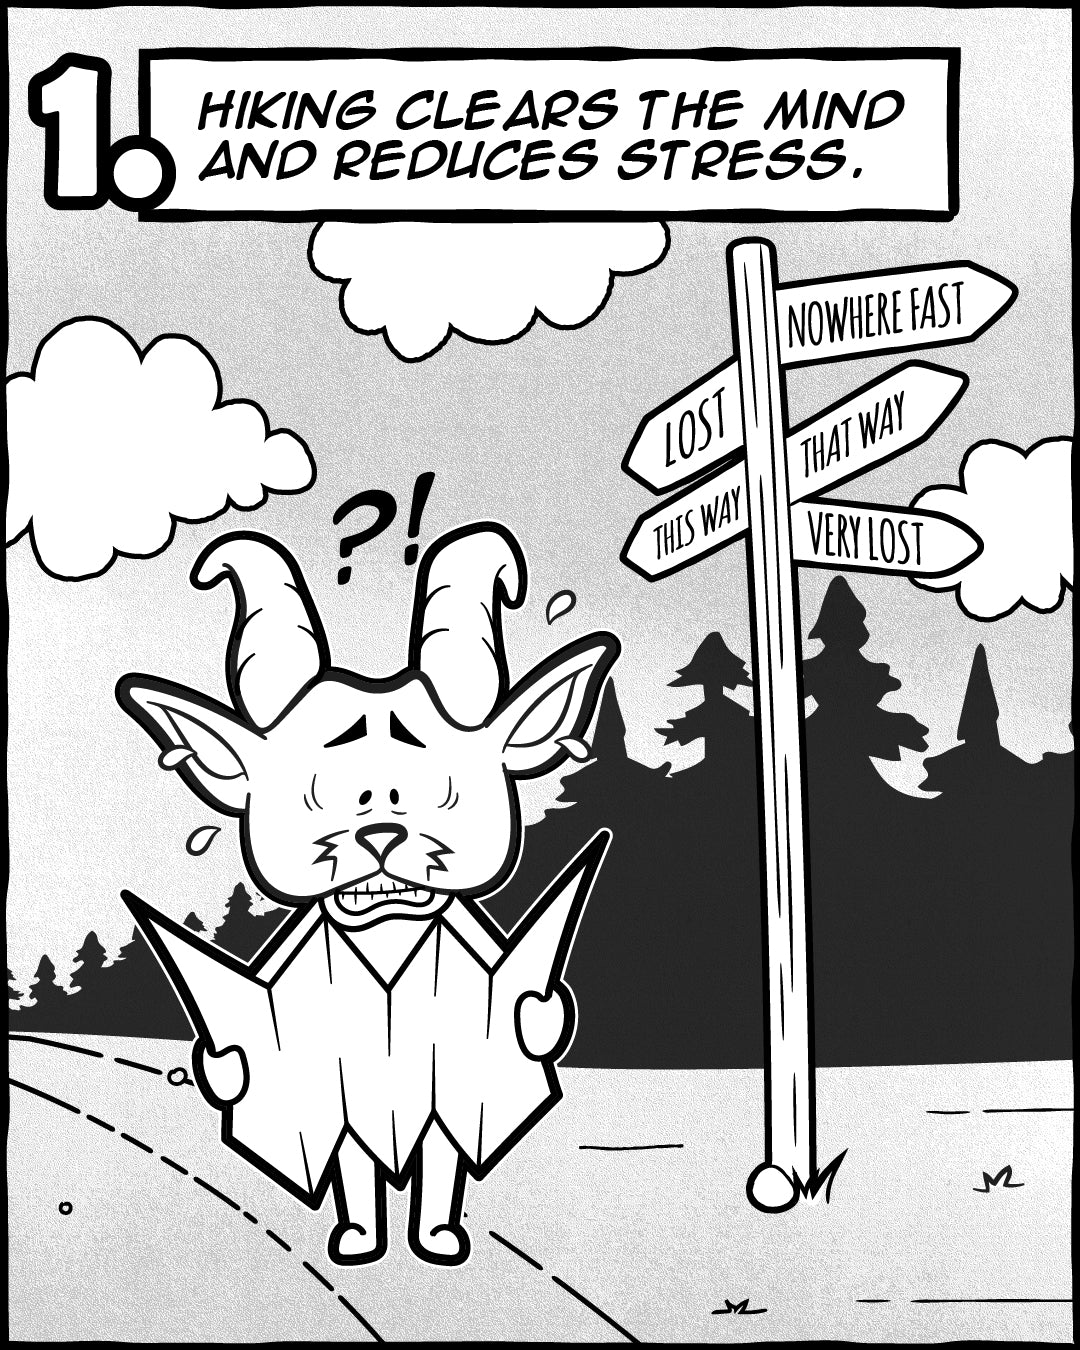 Hiking Reduces Stress - 5 Reasons Hiking Is Good For Your Soul, The Adventures Of Lambert Comic Series   TRVRS Outdoors